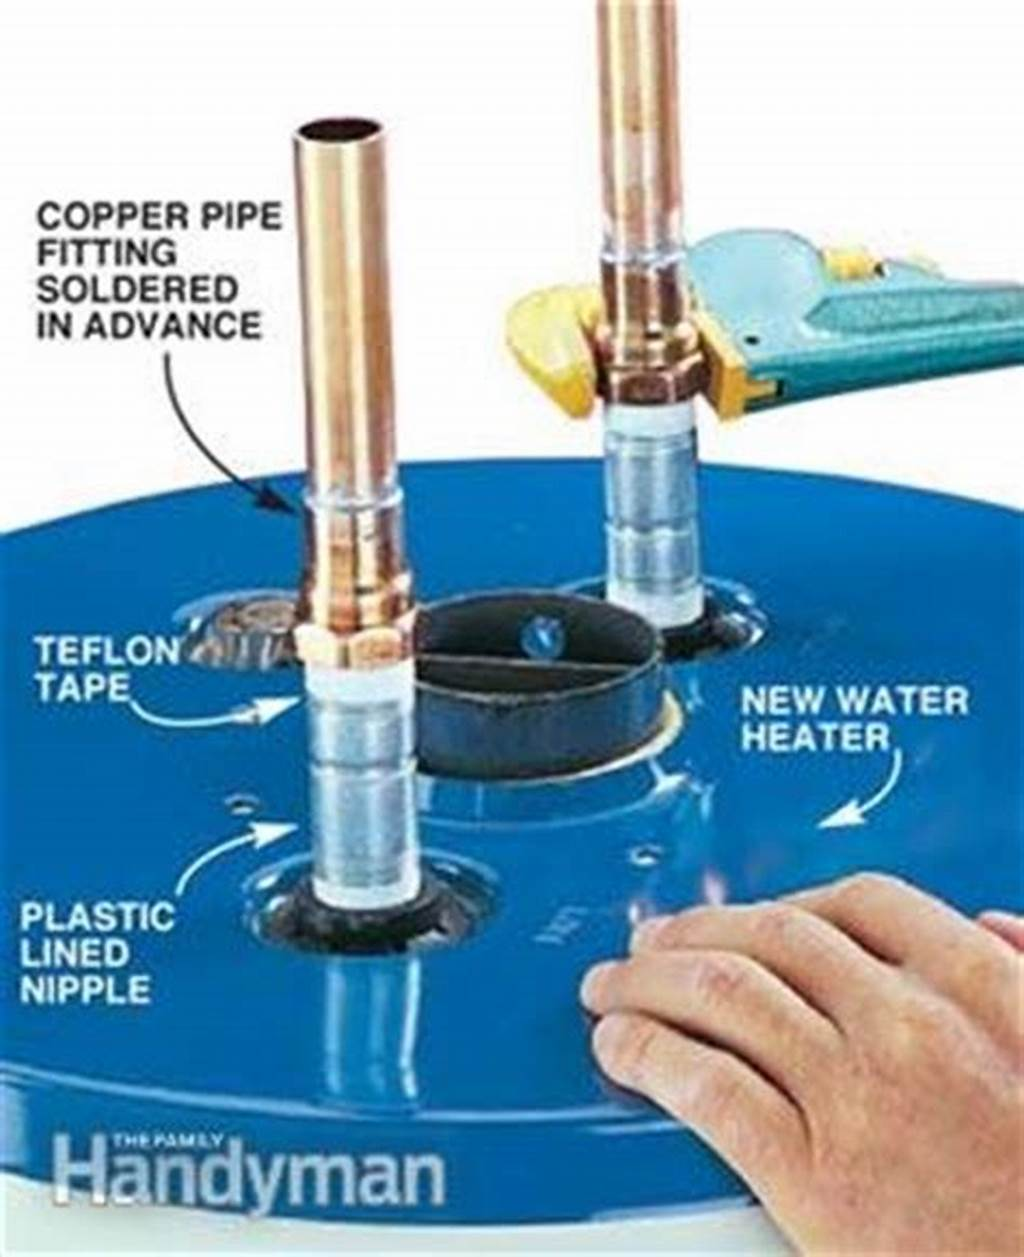 #How #To #Install #A #Hot #Water #Heater #The #Family #Handyman